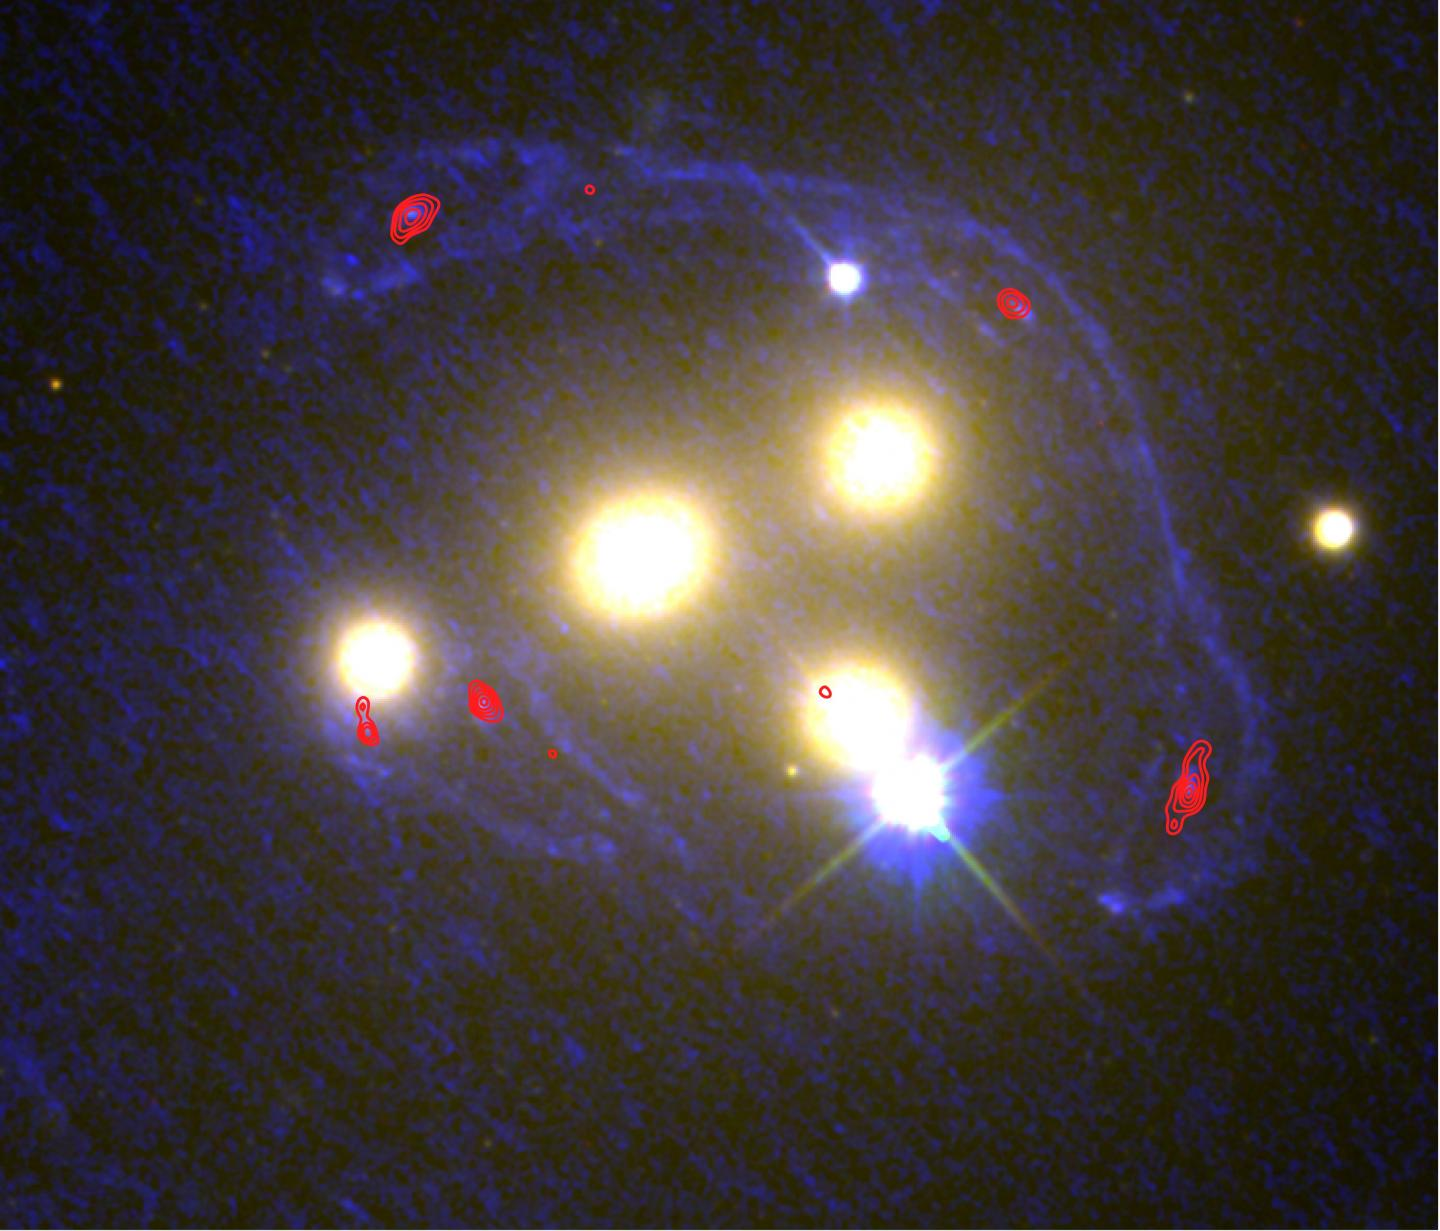 A view of the four central galaxies at the heart of cluster Abell 3827, at a broader range of wavelengths, including Hubble Space Telescope imaging in the ultraviolet (shown as blue), and Atacama Large Millimetre Array imaging at very long (sub-mm) wavelengths (shown as red contour lines). At these wavelengths, the foreground cluster becomes nearly transparent, enabling the background galaxy to be more clearly seen. It is now easier to identify how that background galaxy has been distorted. (Image: NASA/ESA/Richard Massey (Durham University)